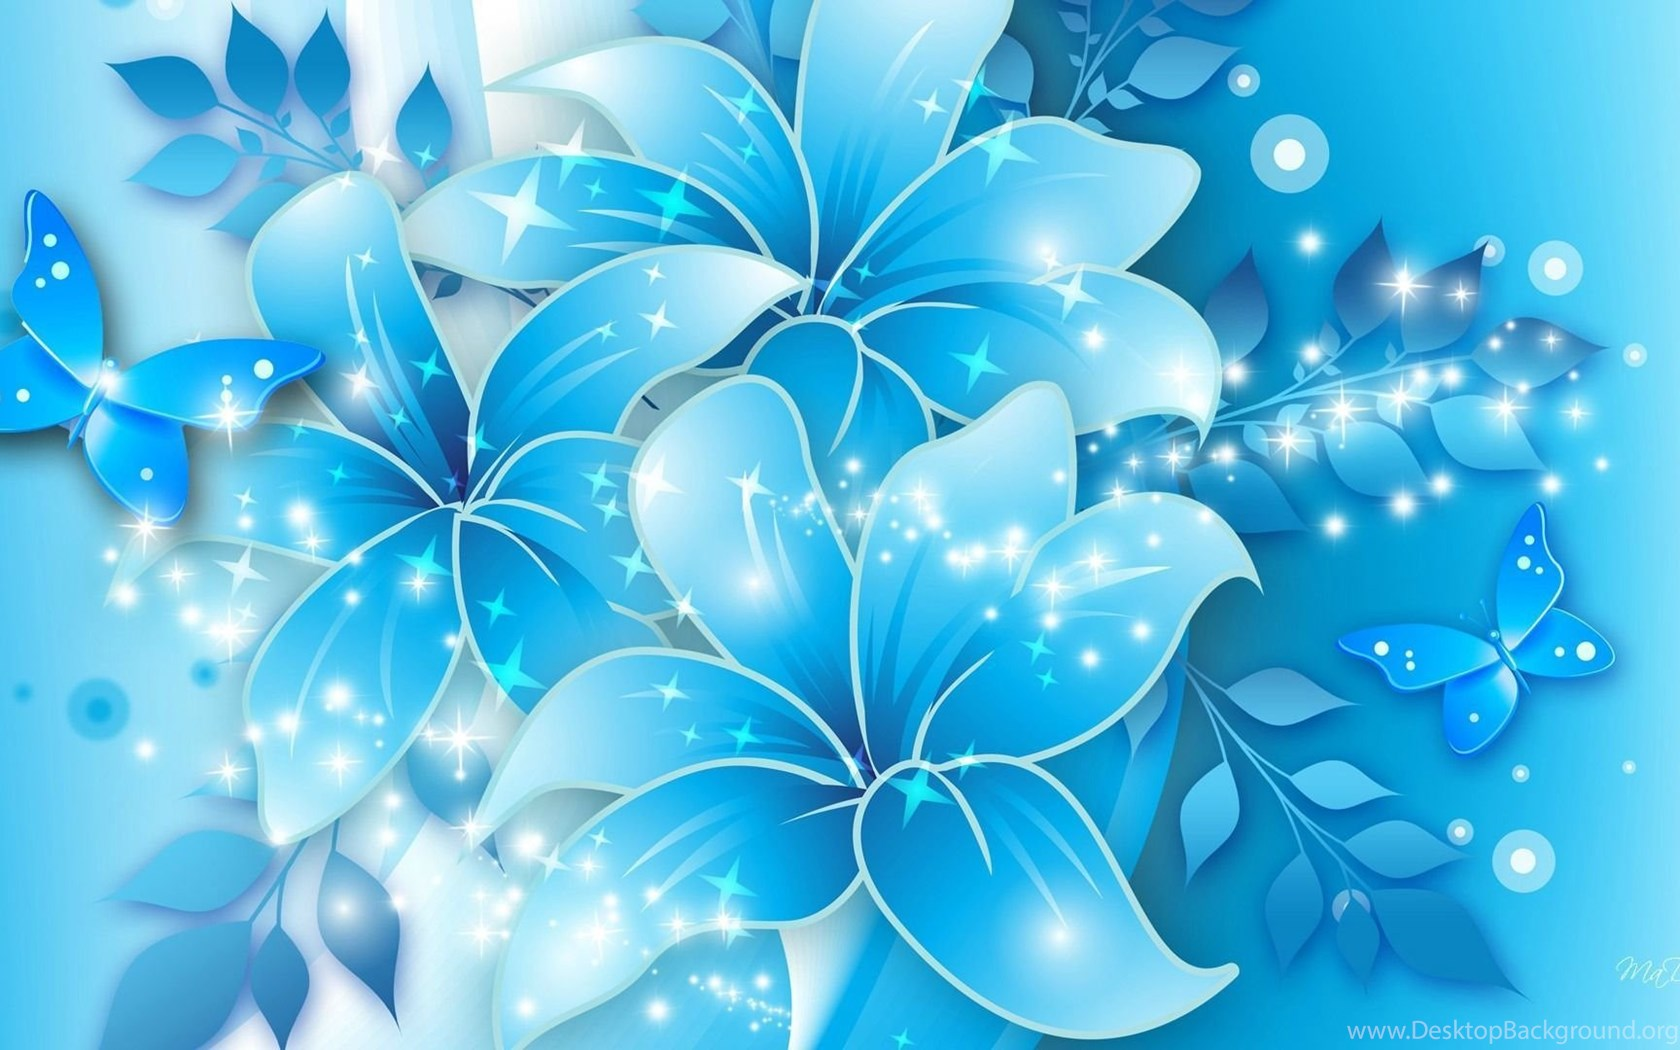 Light Blue Flowers Wallpapers Funny And Amazing Wallpapers Desktop